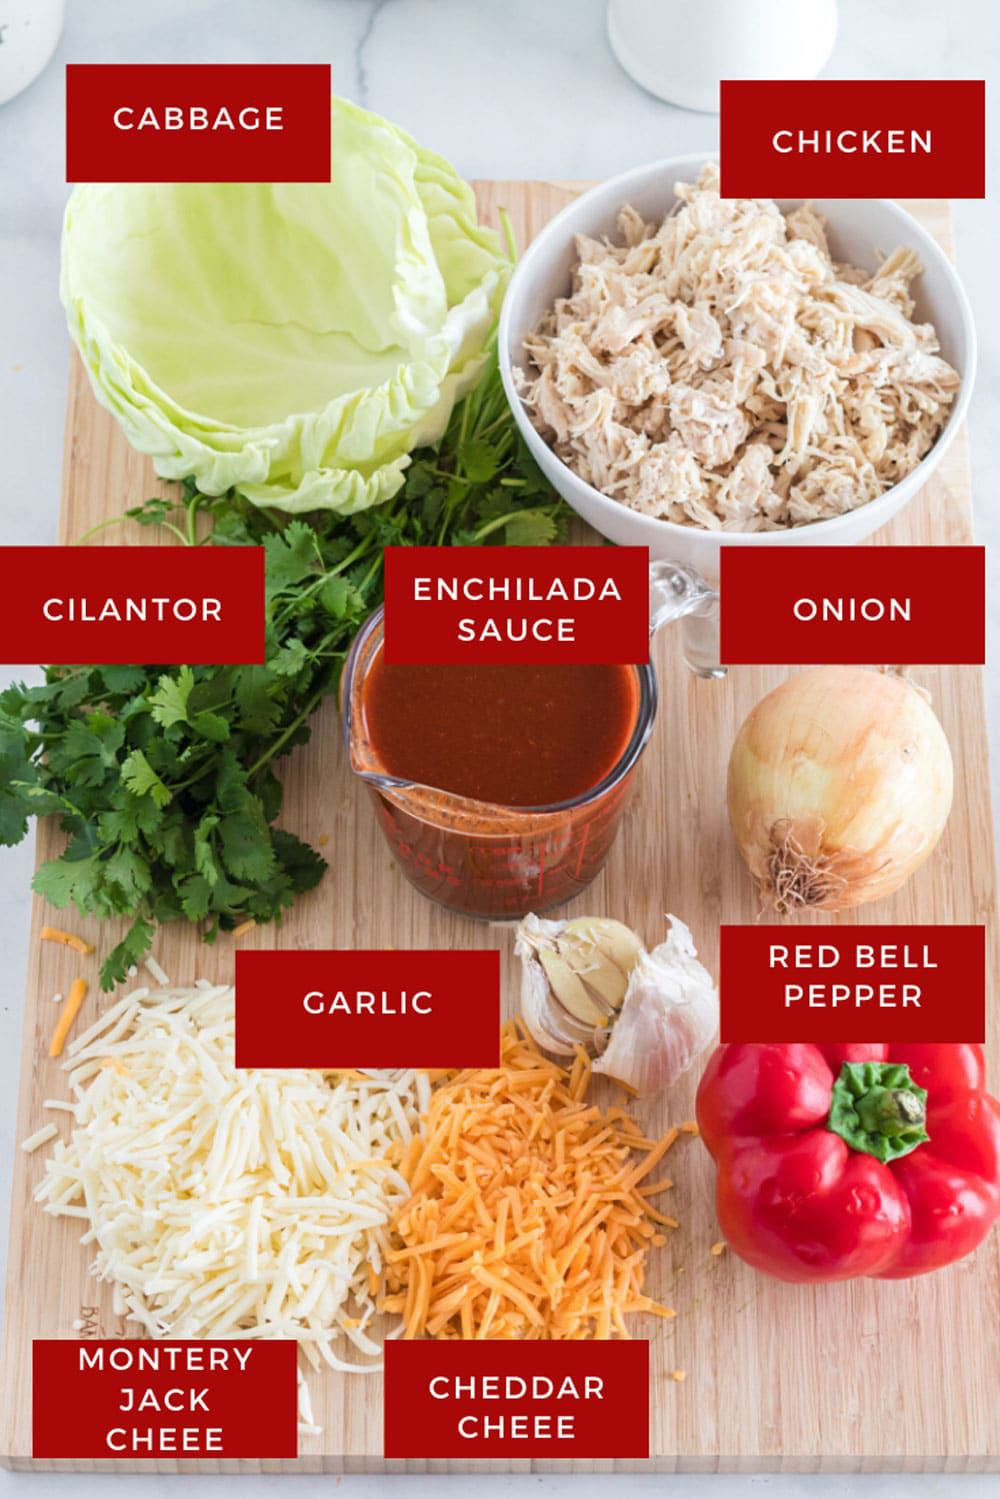 Chicken, cabbage, sauce, cheese, and other ingredients for keto enchiladas